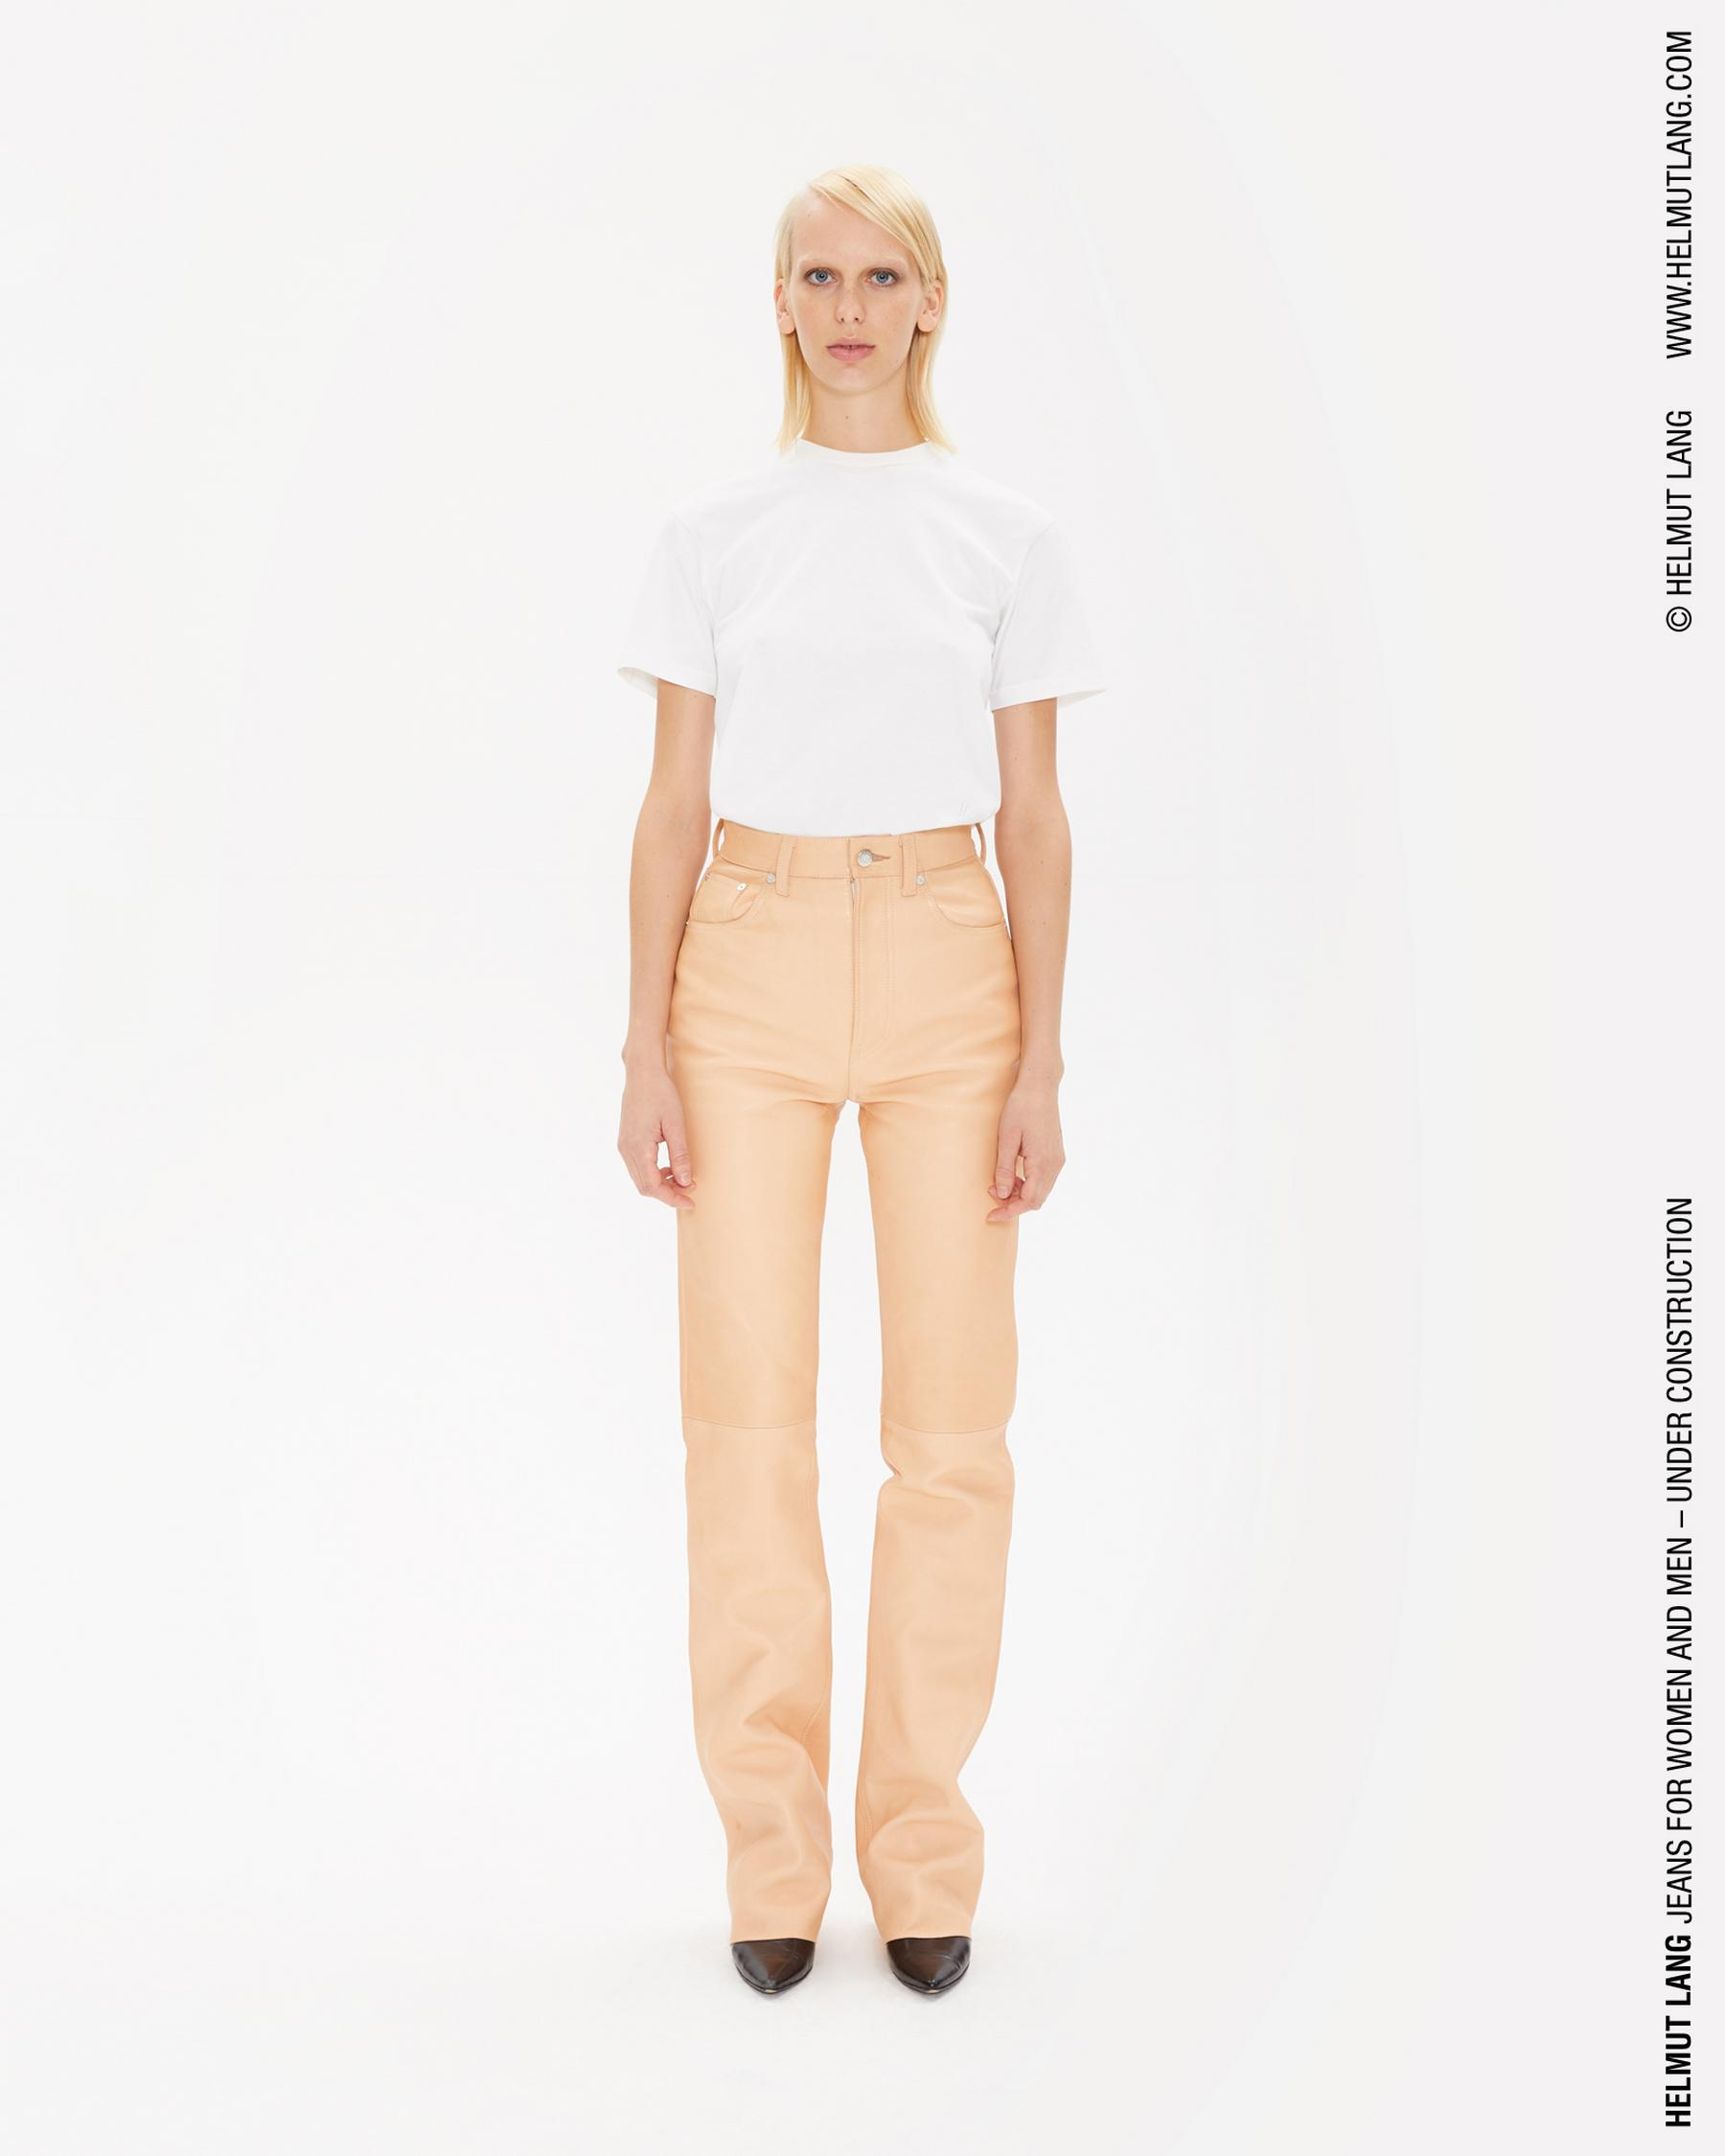 Bootcut Leather Pants by Helmut Lang, available on helmutlang.com for $725 Kim Kardashian Pants Exact Product